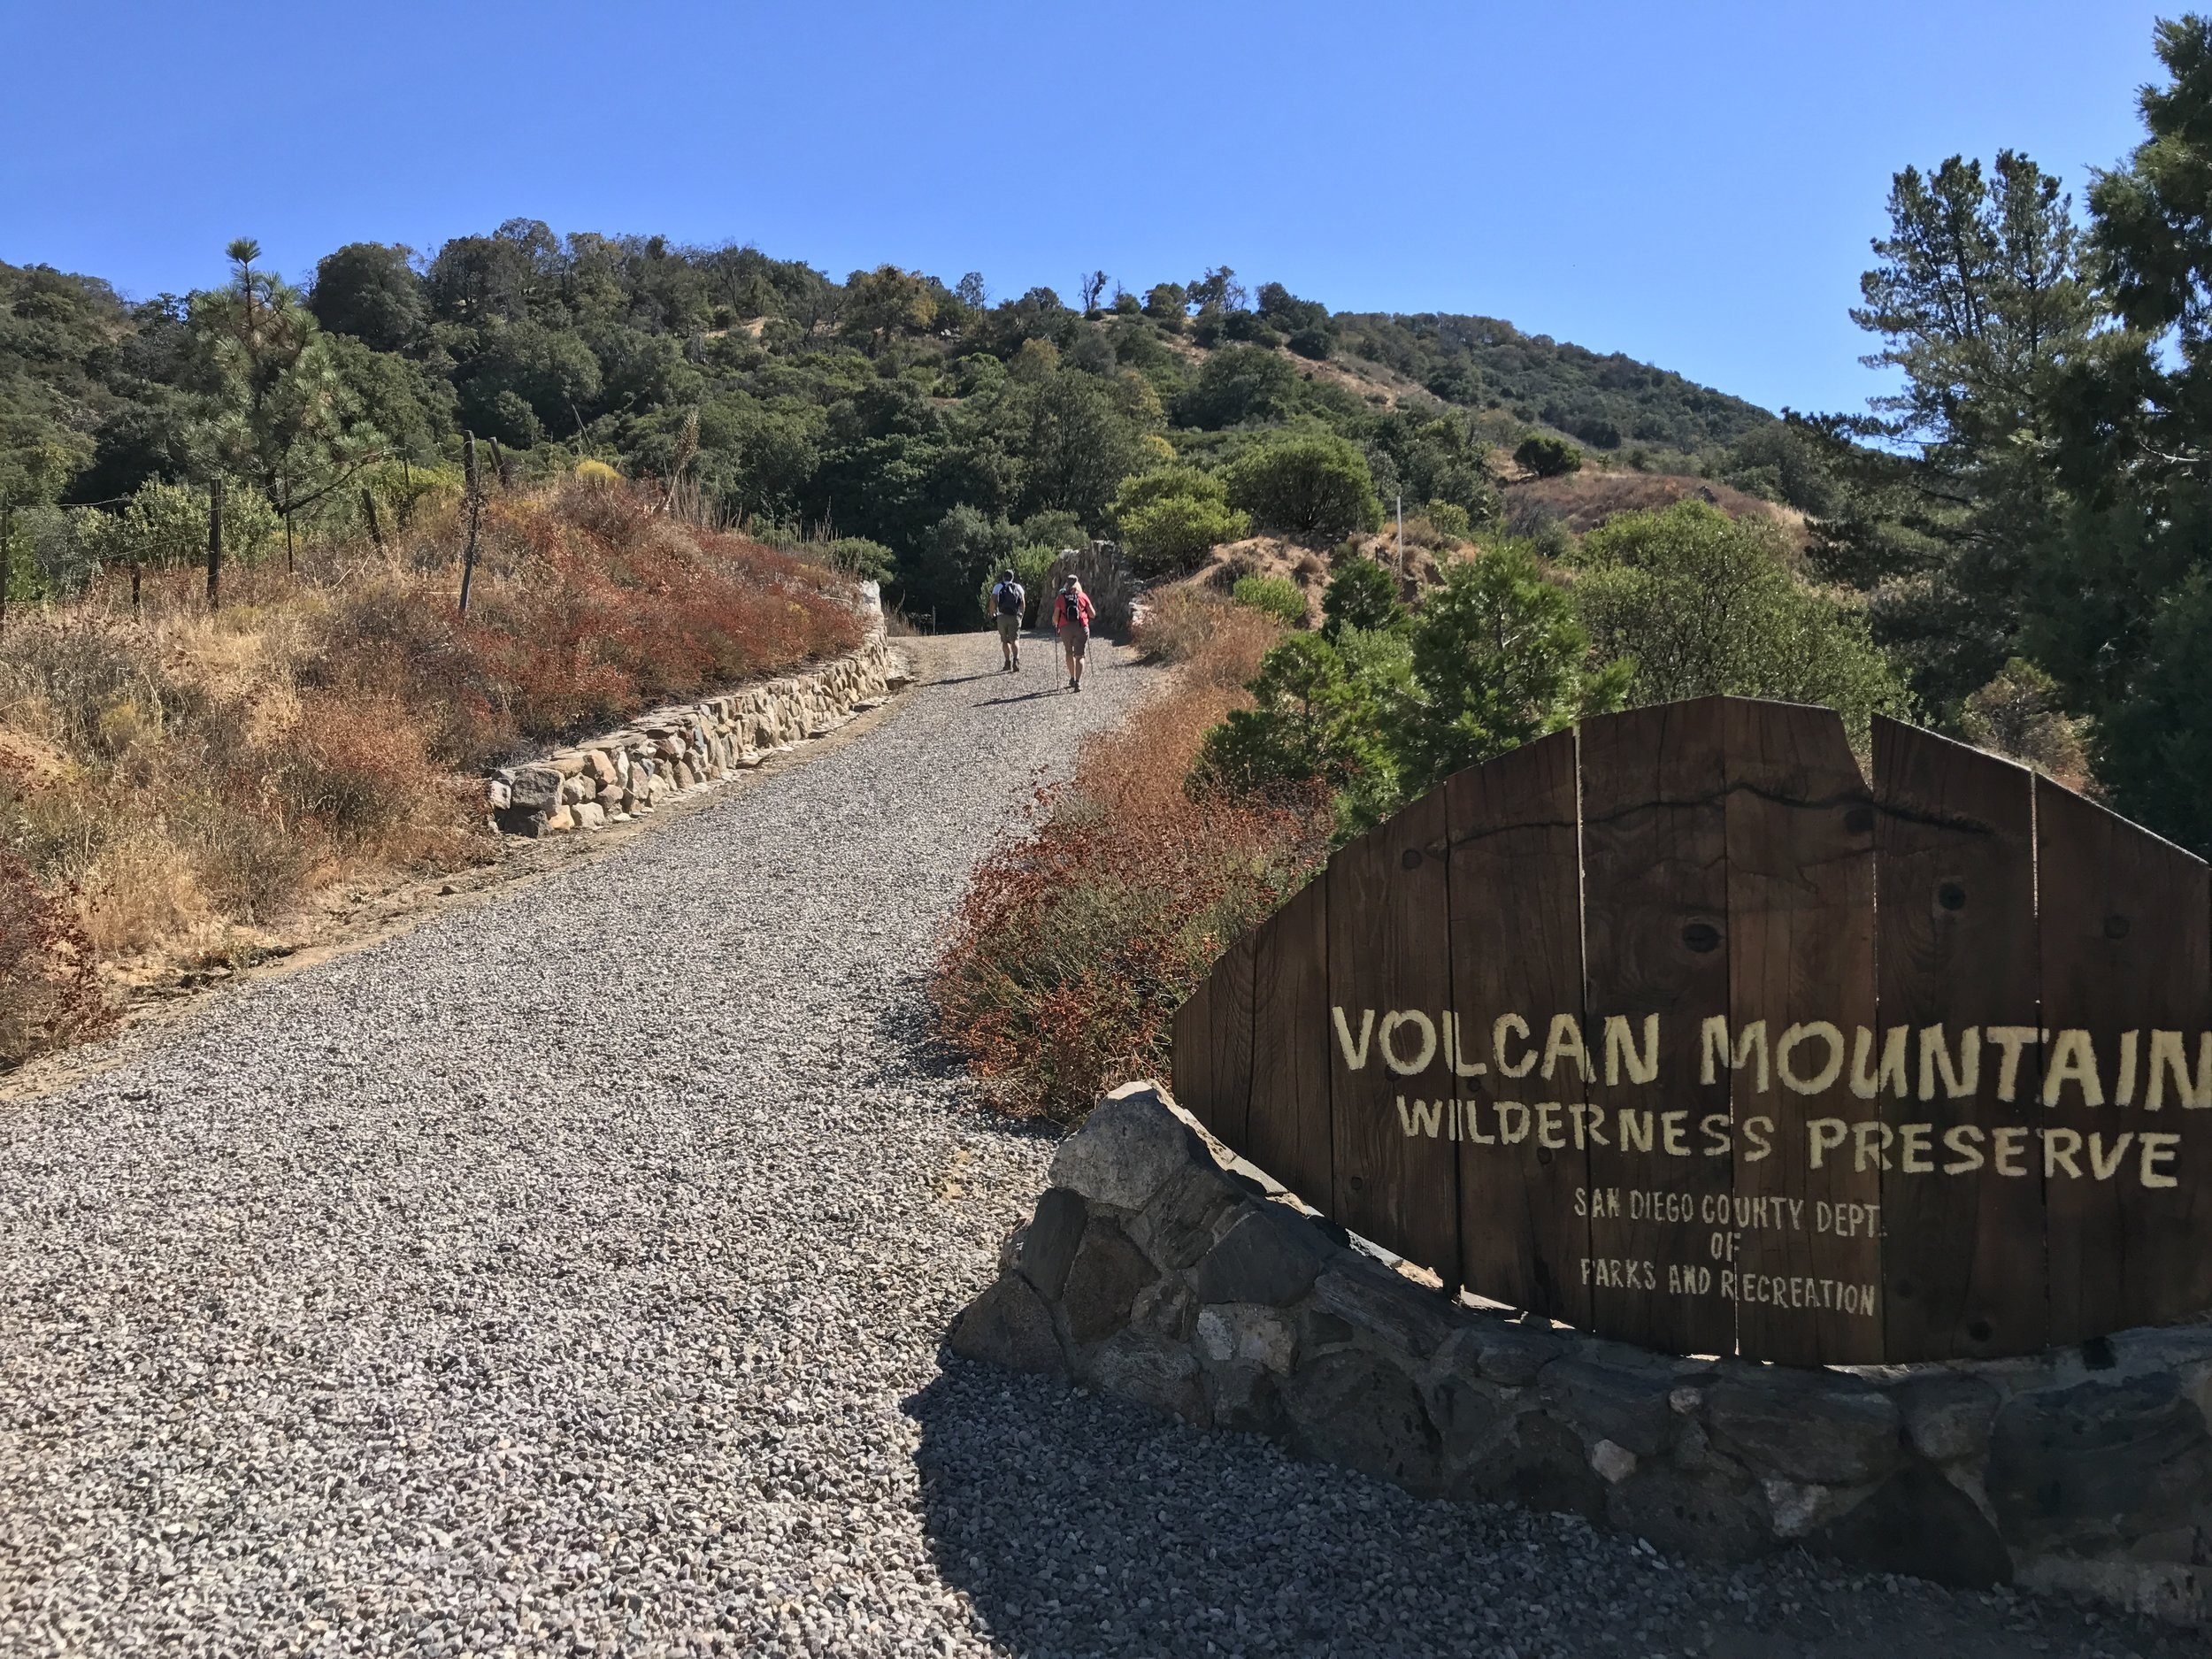 The preserve has two trails: the 5 Oaks Trail; and the main trail, both of which head to the summit.